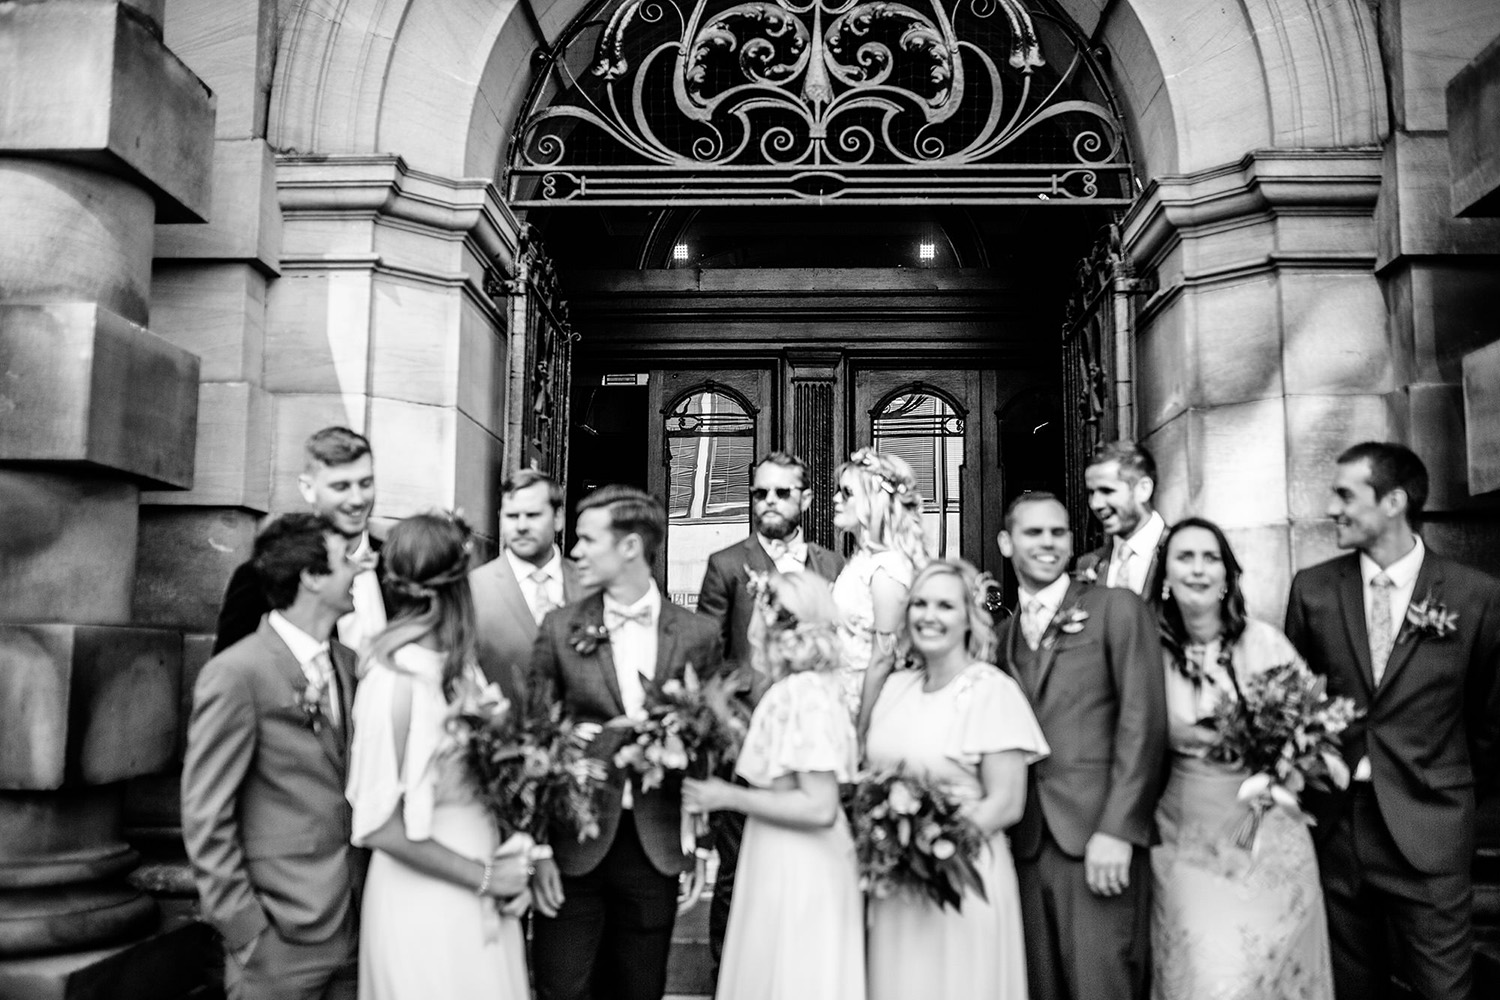 LAING ART GALLERY NEWCASTLE WEDDING PHOTOGRAPHY 115.JPG